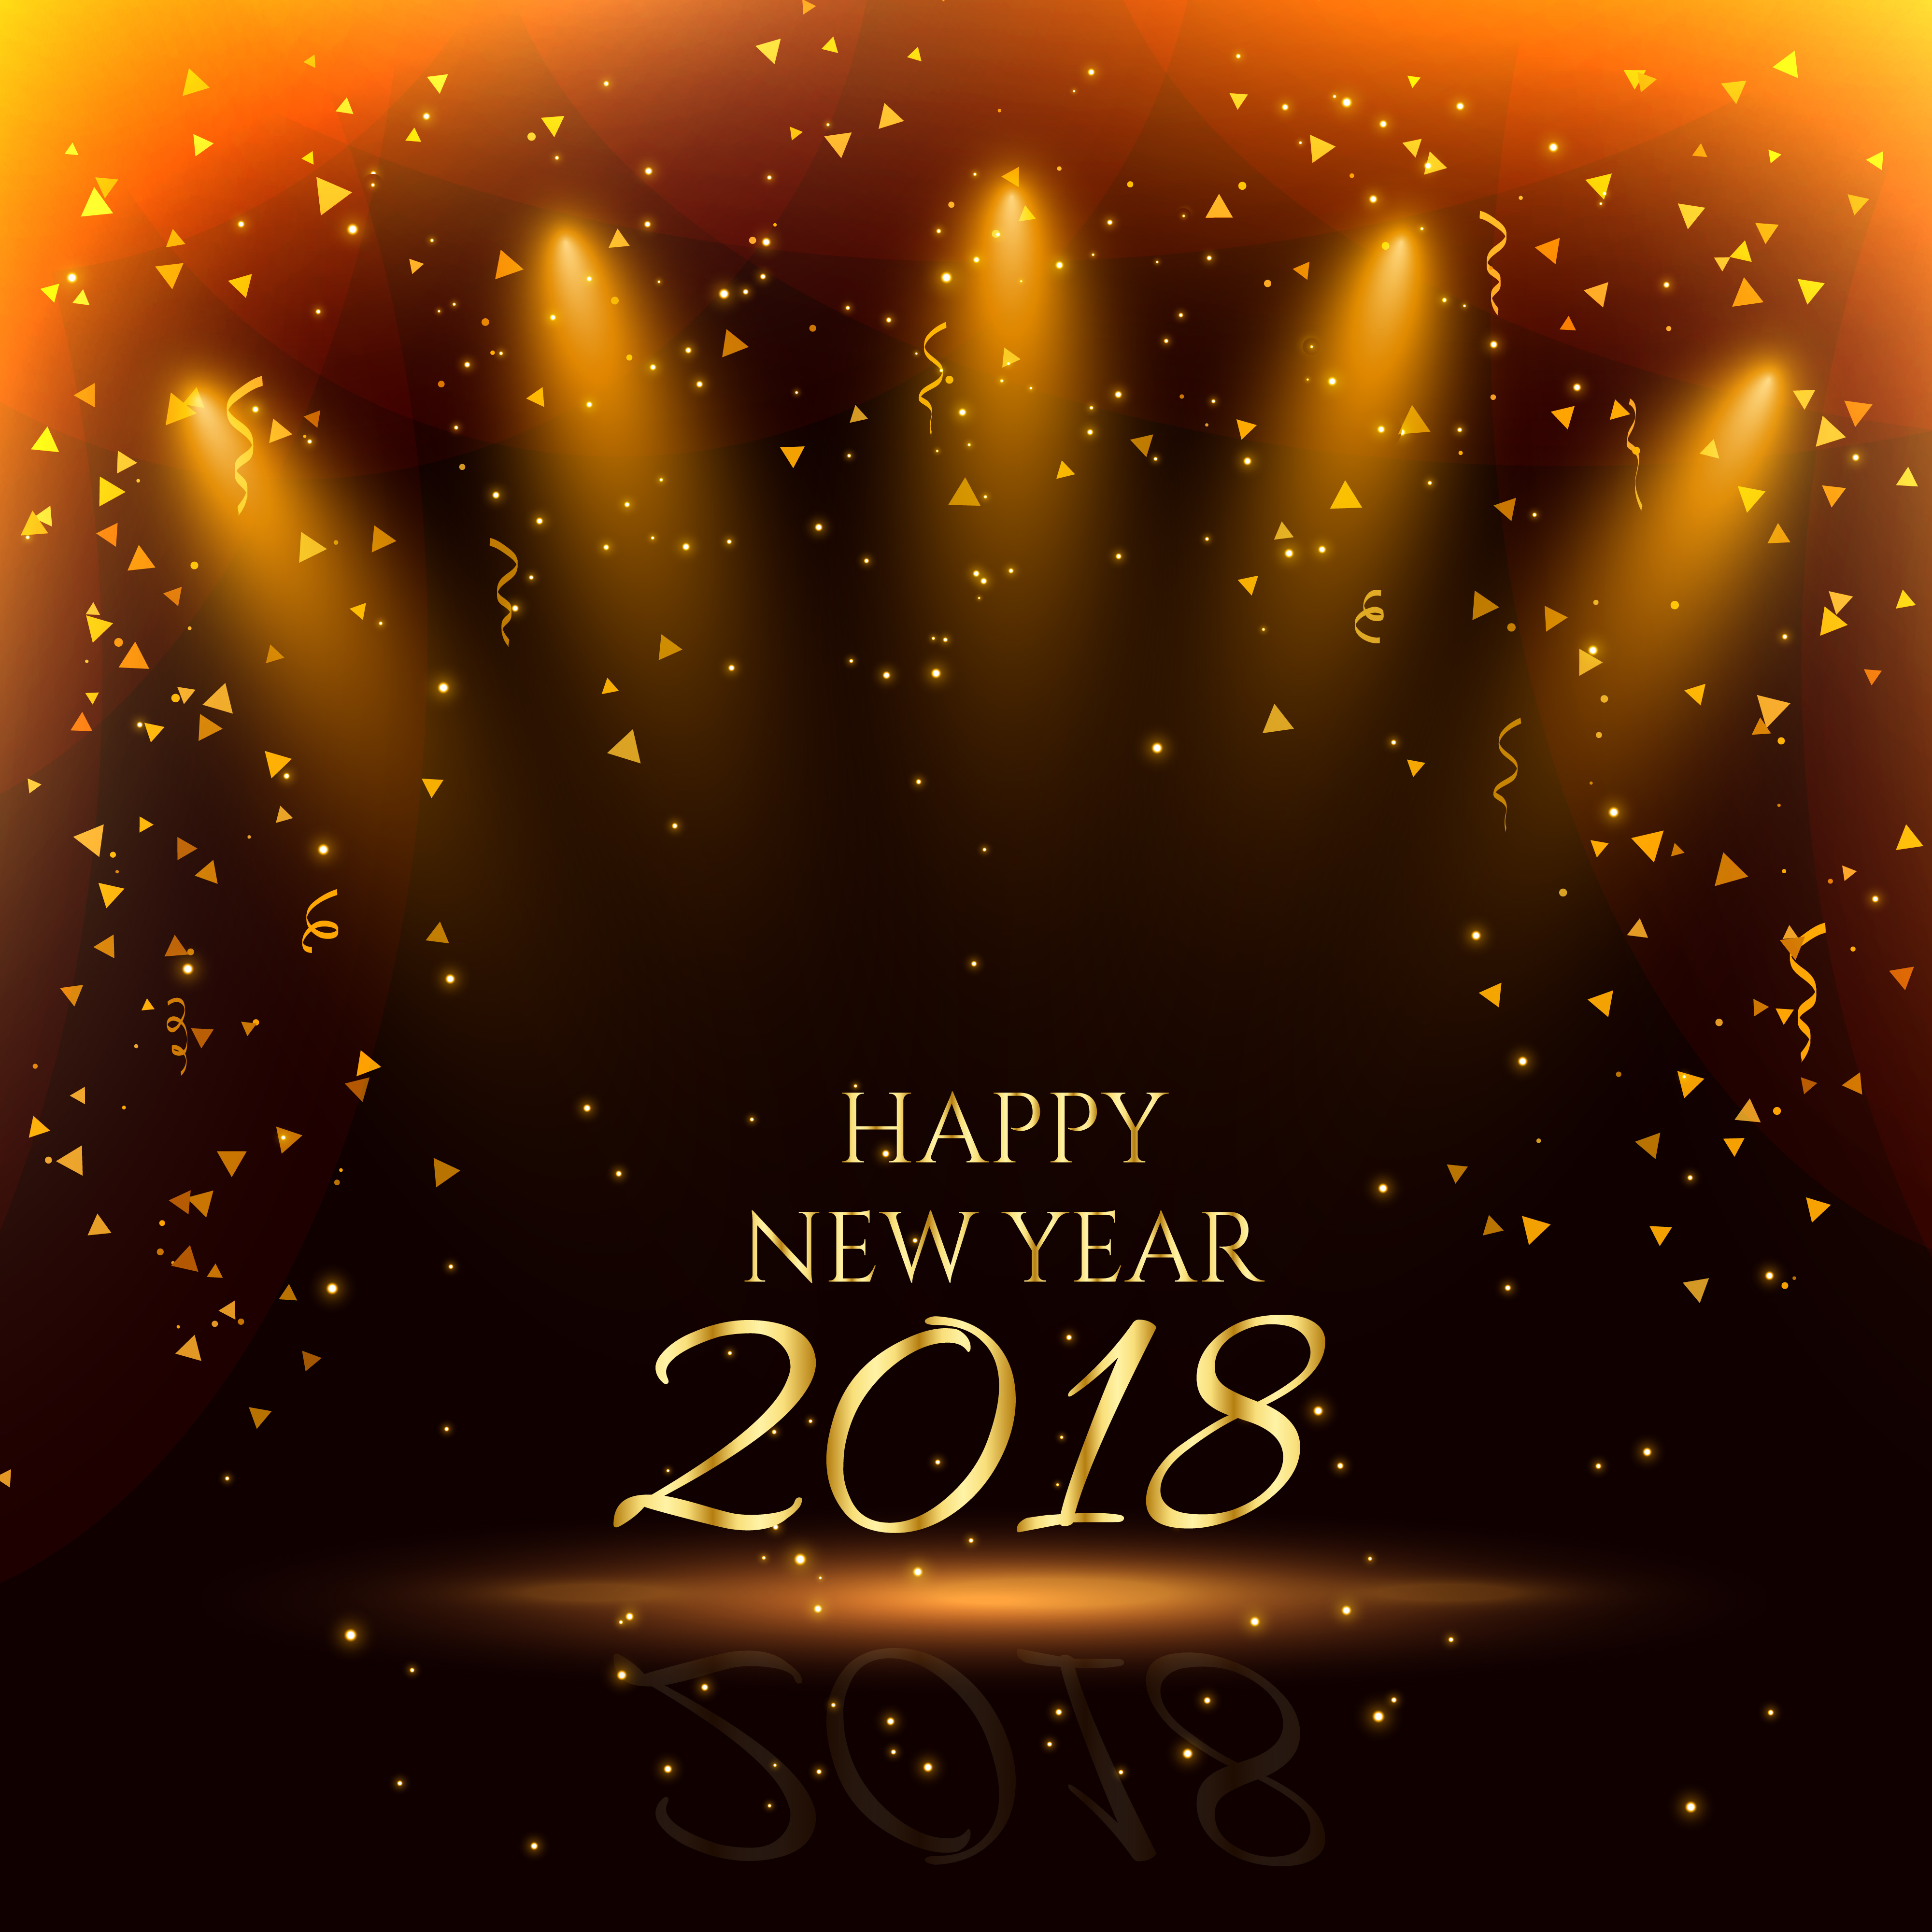 happy new year party background with golden confetti - Download Free Vector Art, Stock Graphics ...